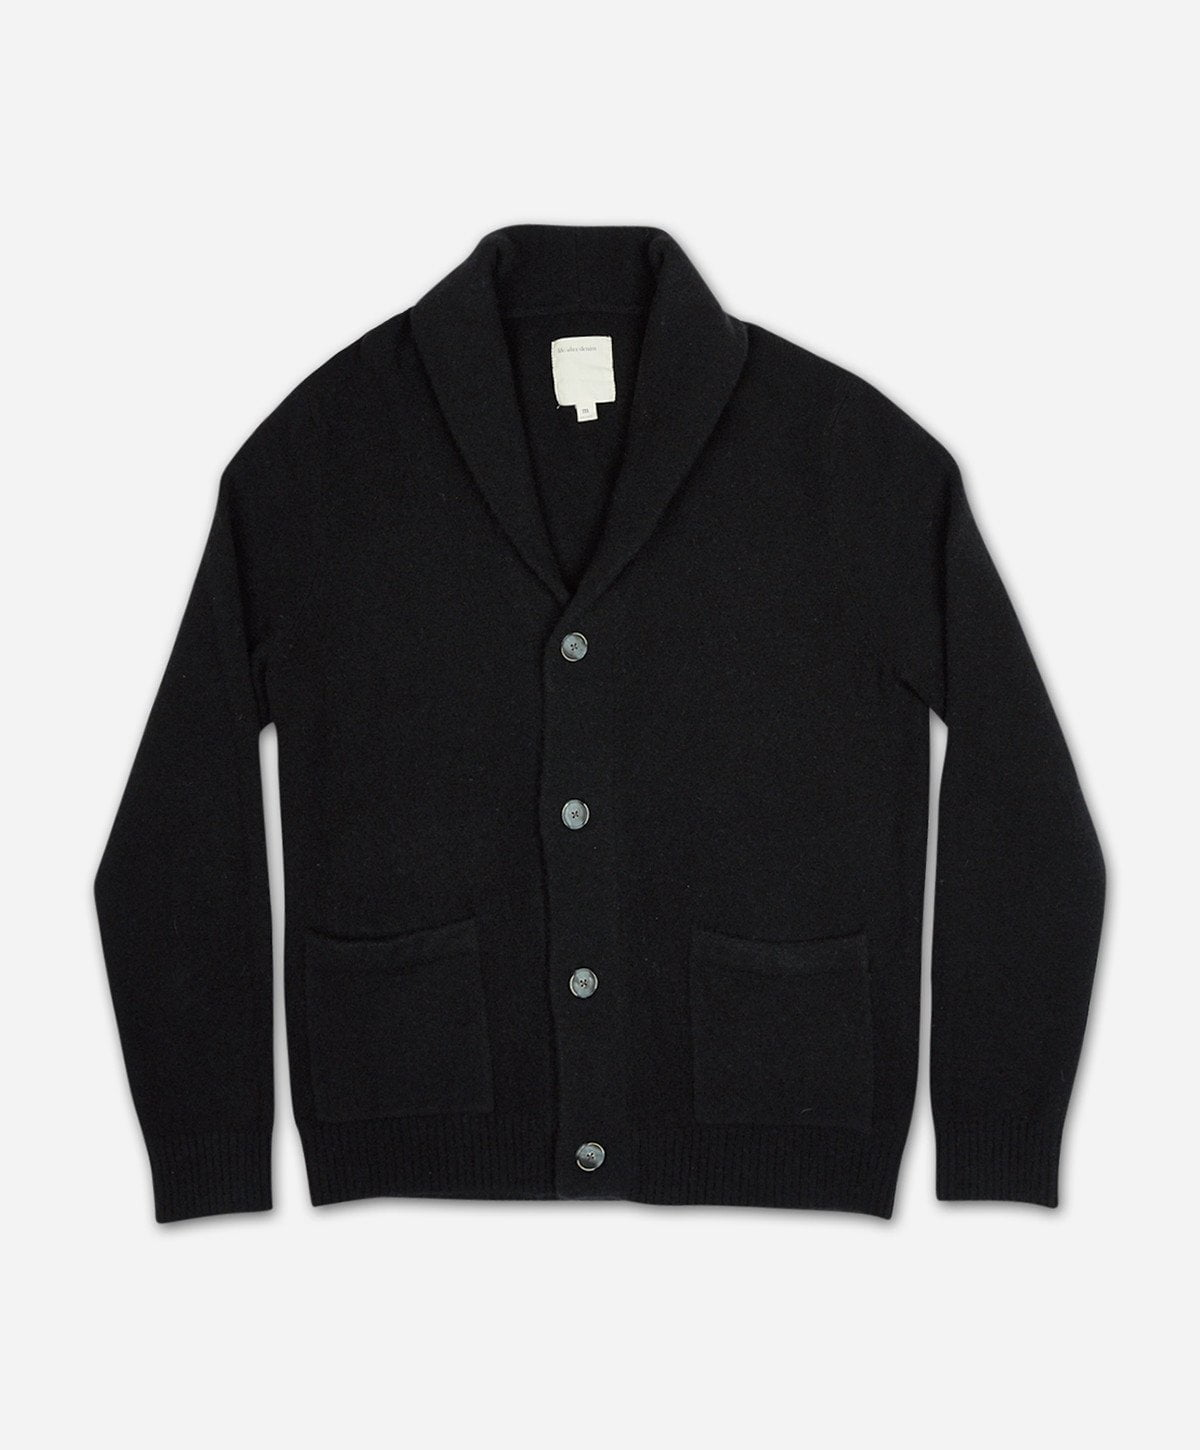 Alps Cardigan - Black